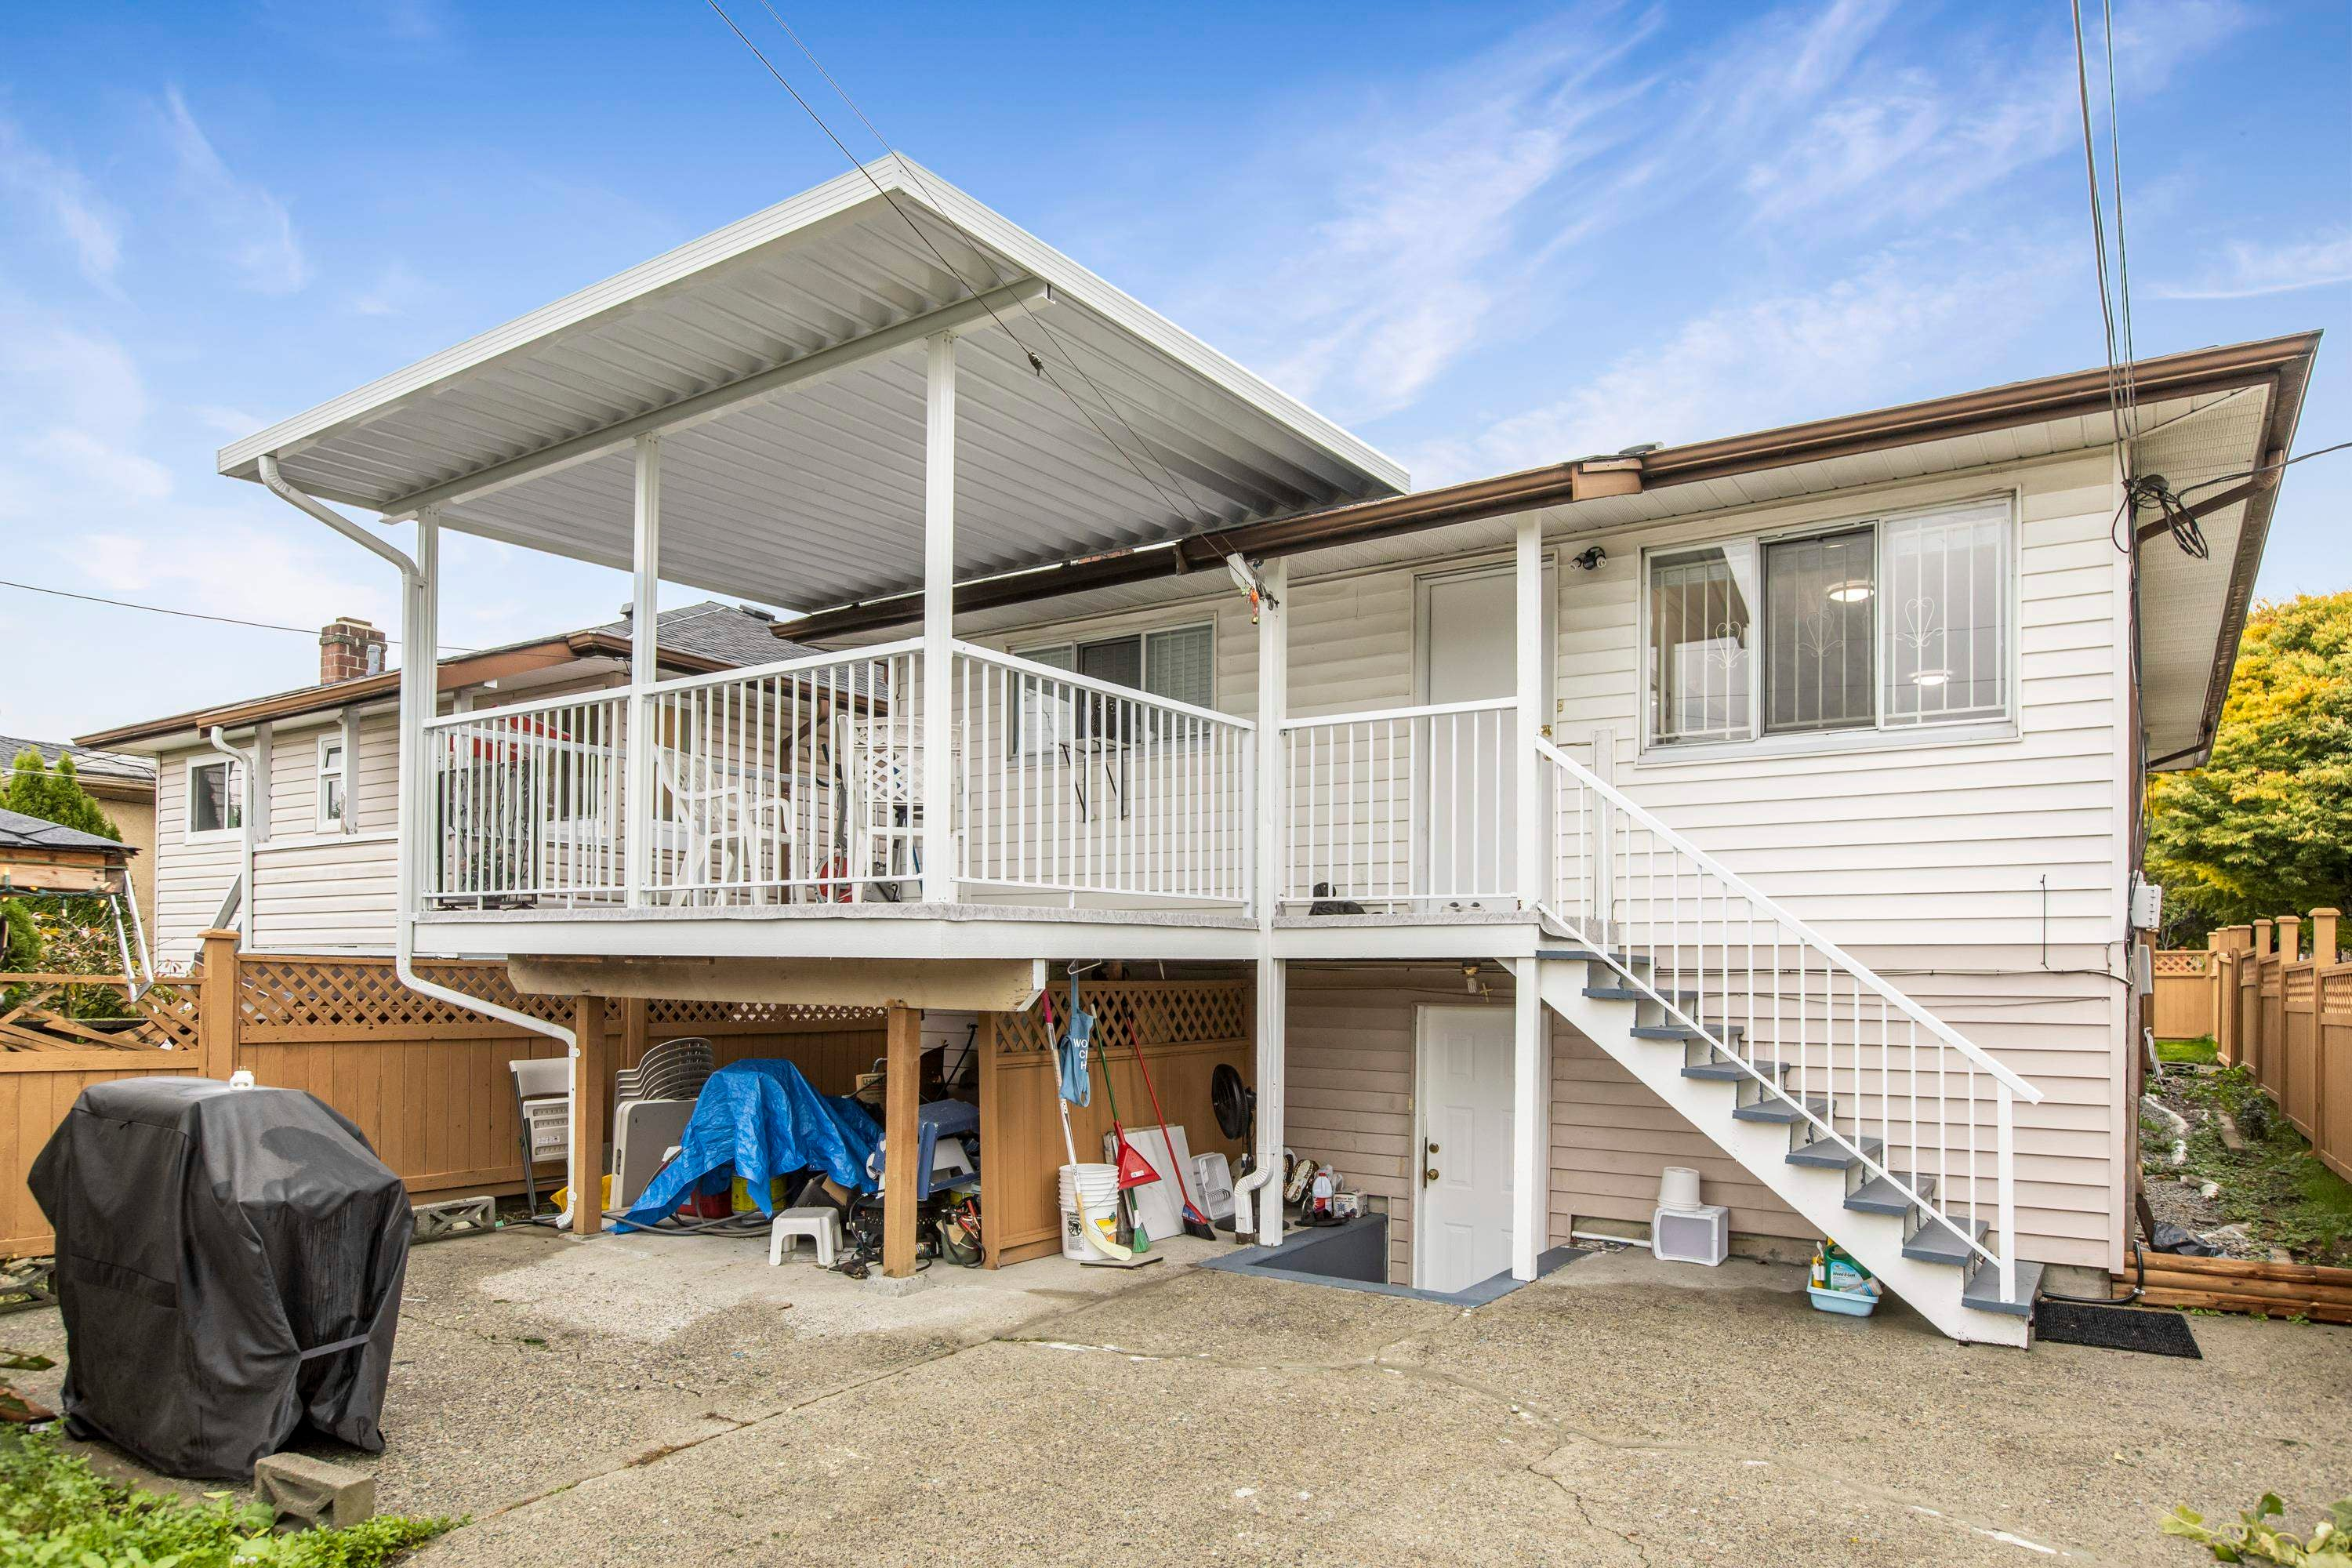 1352 E 57TH AVENUE - South Vancouver House/Single Family for sale, 4 Bedrooms (R2625705) - #5